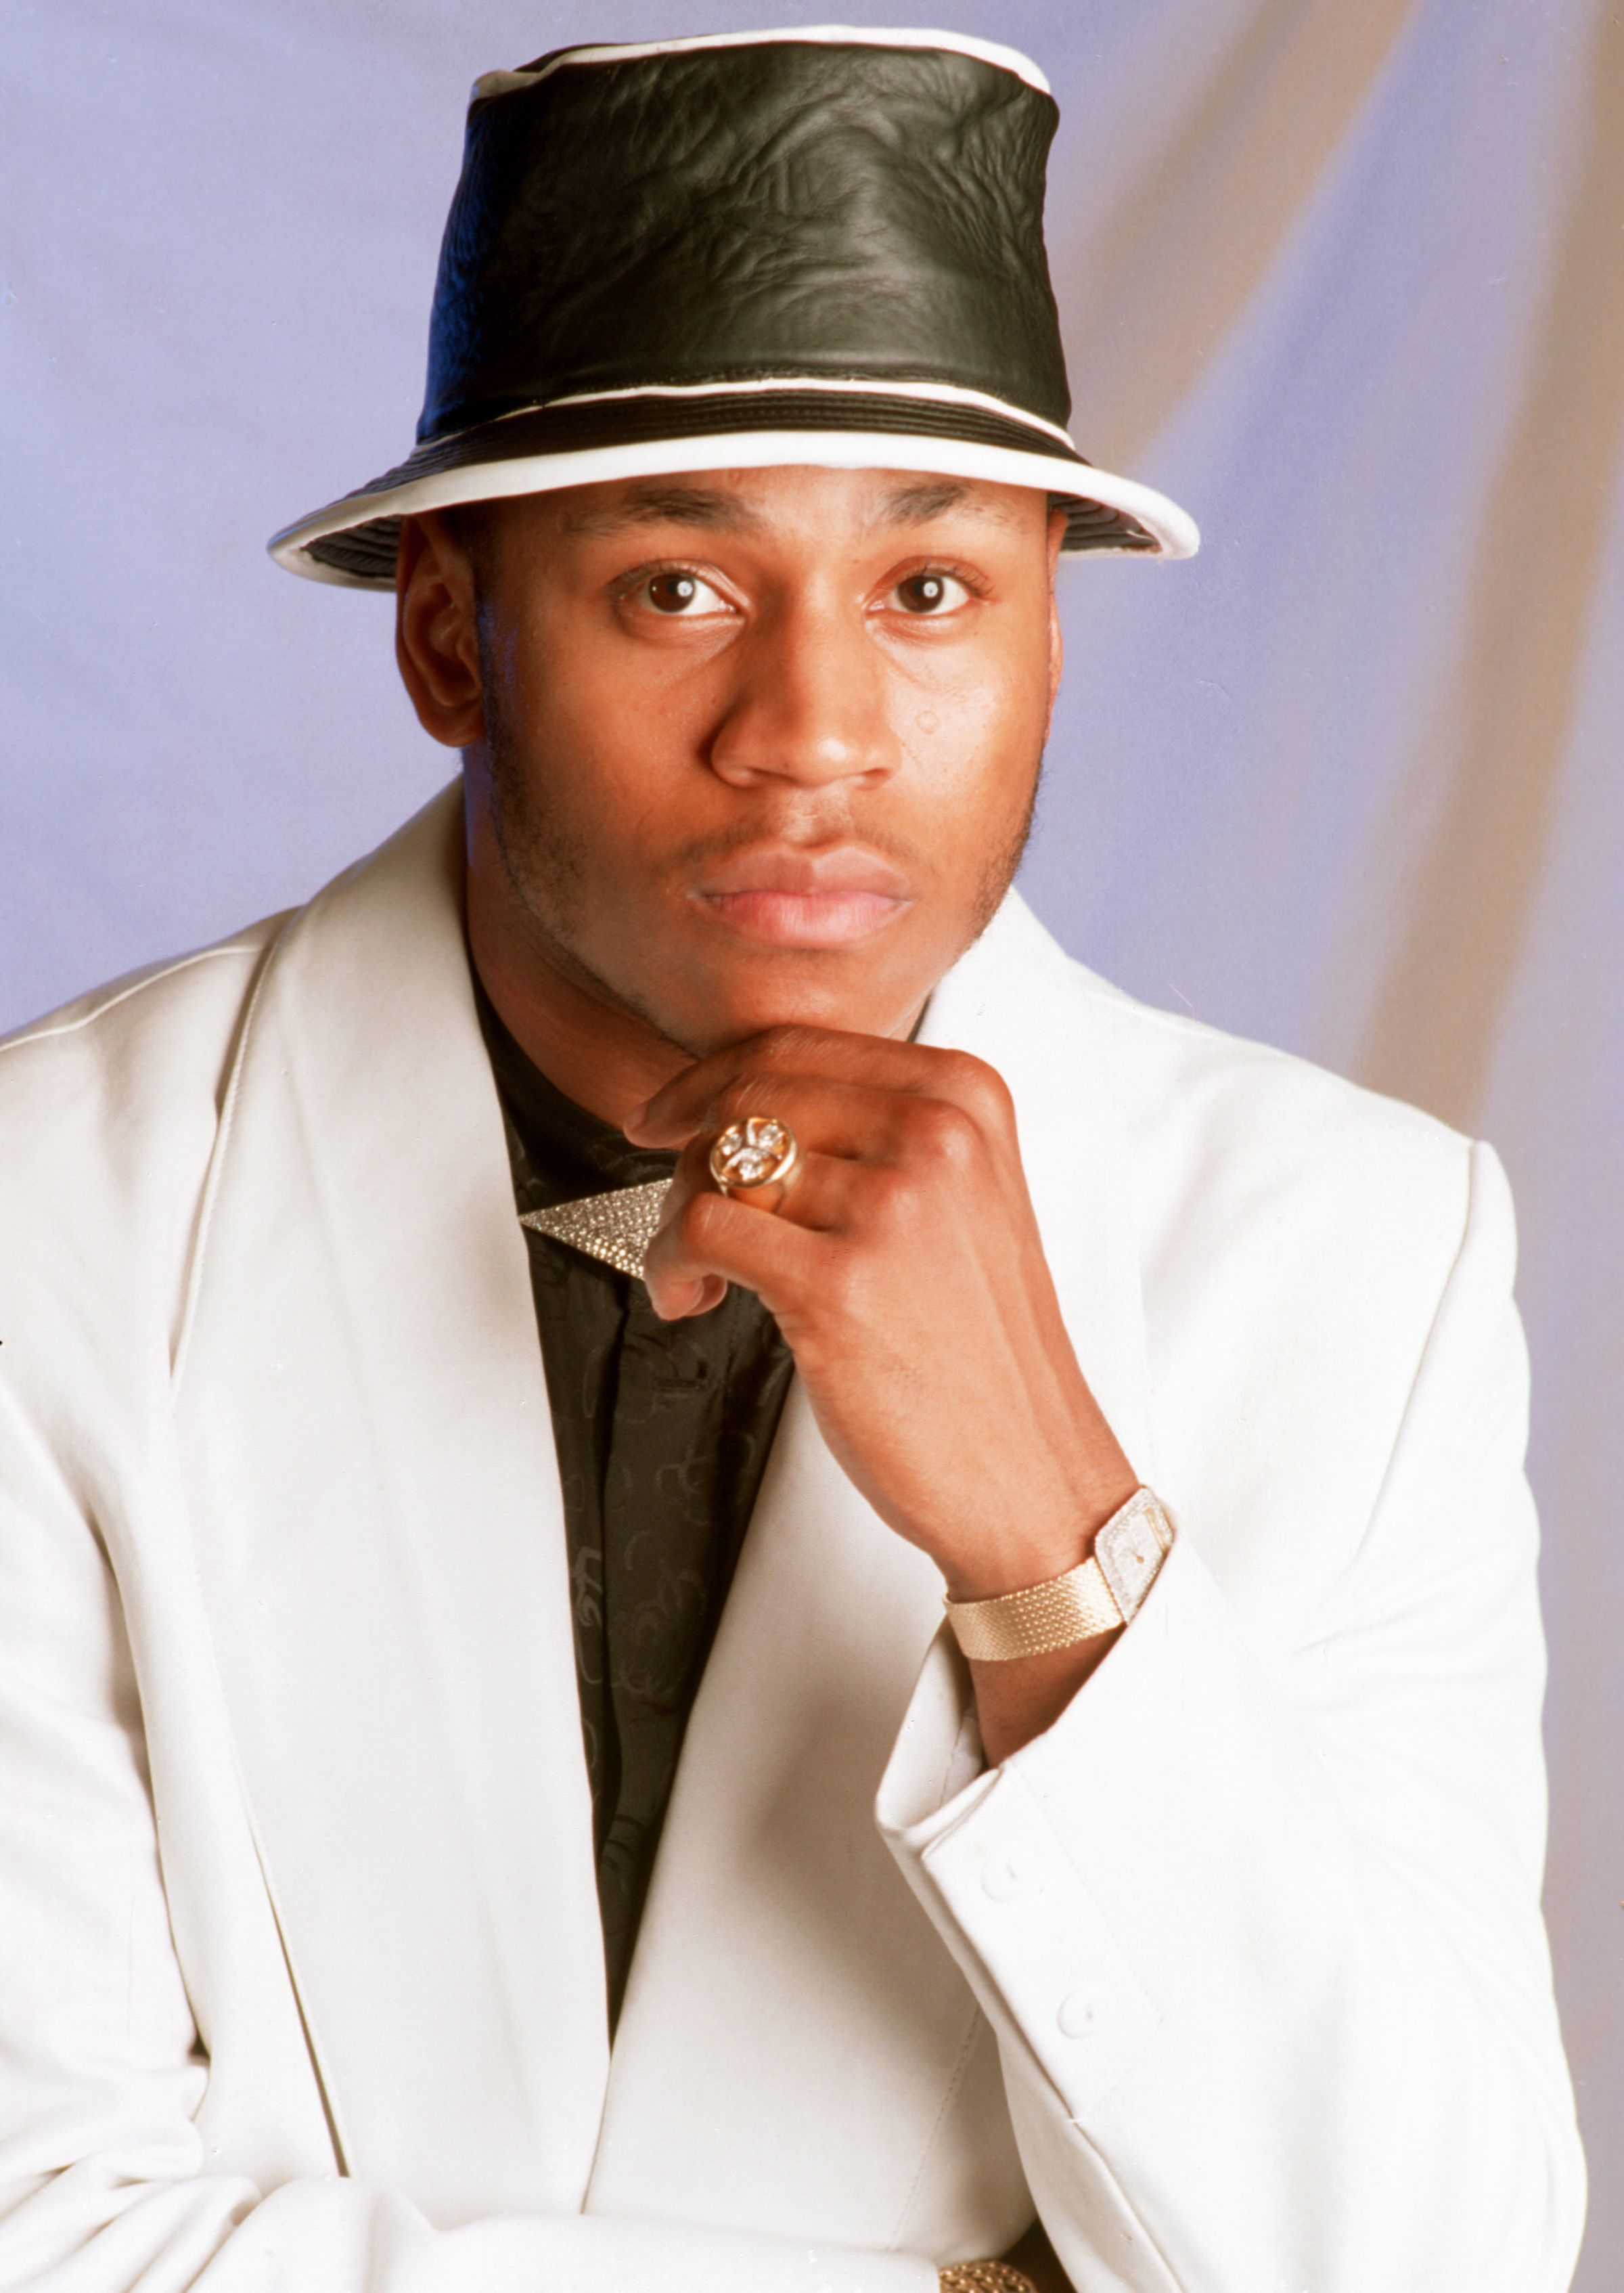 Non-specified snapshot of rapper LL Cool J on January 1. | Photo: Getty Images